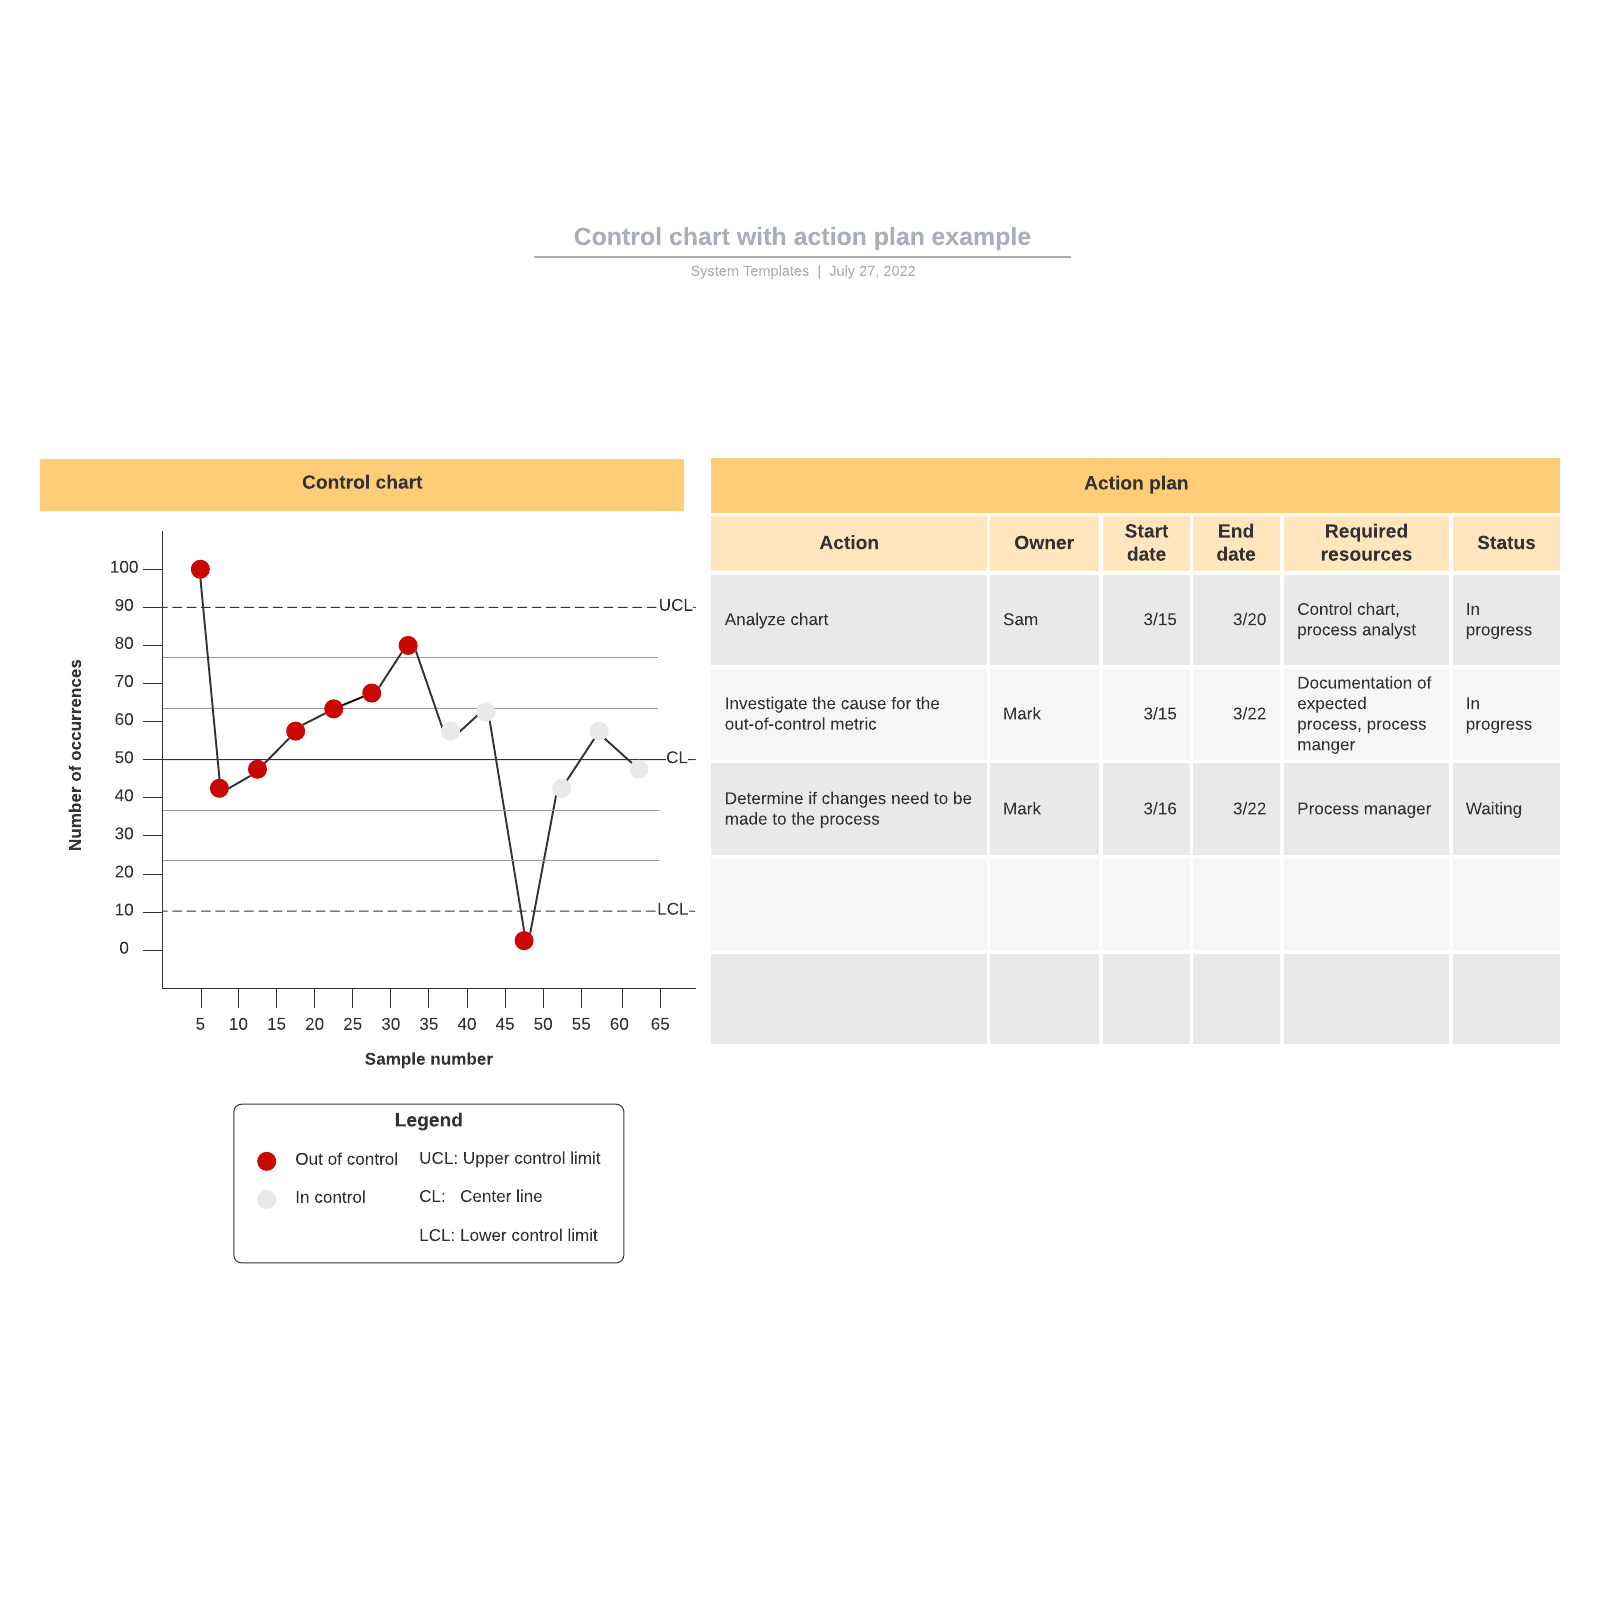 Control chart with action plan example